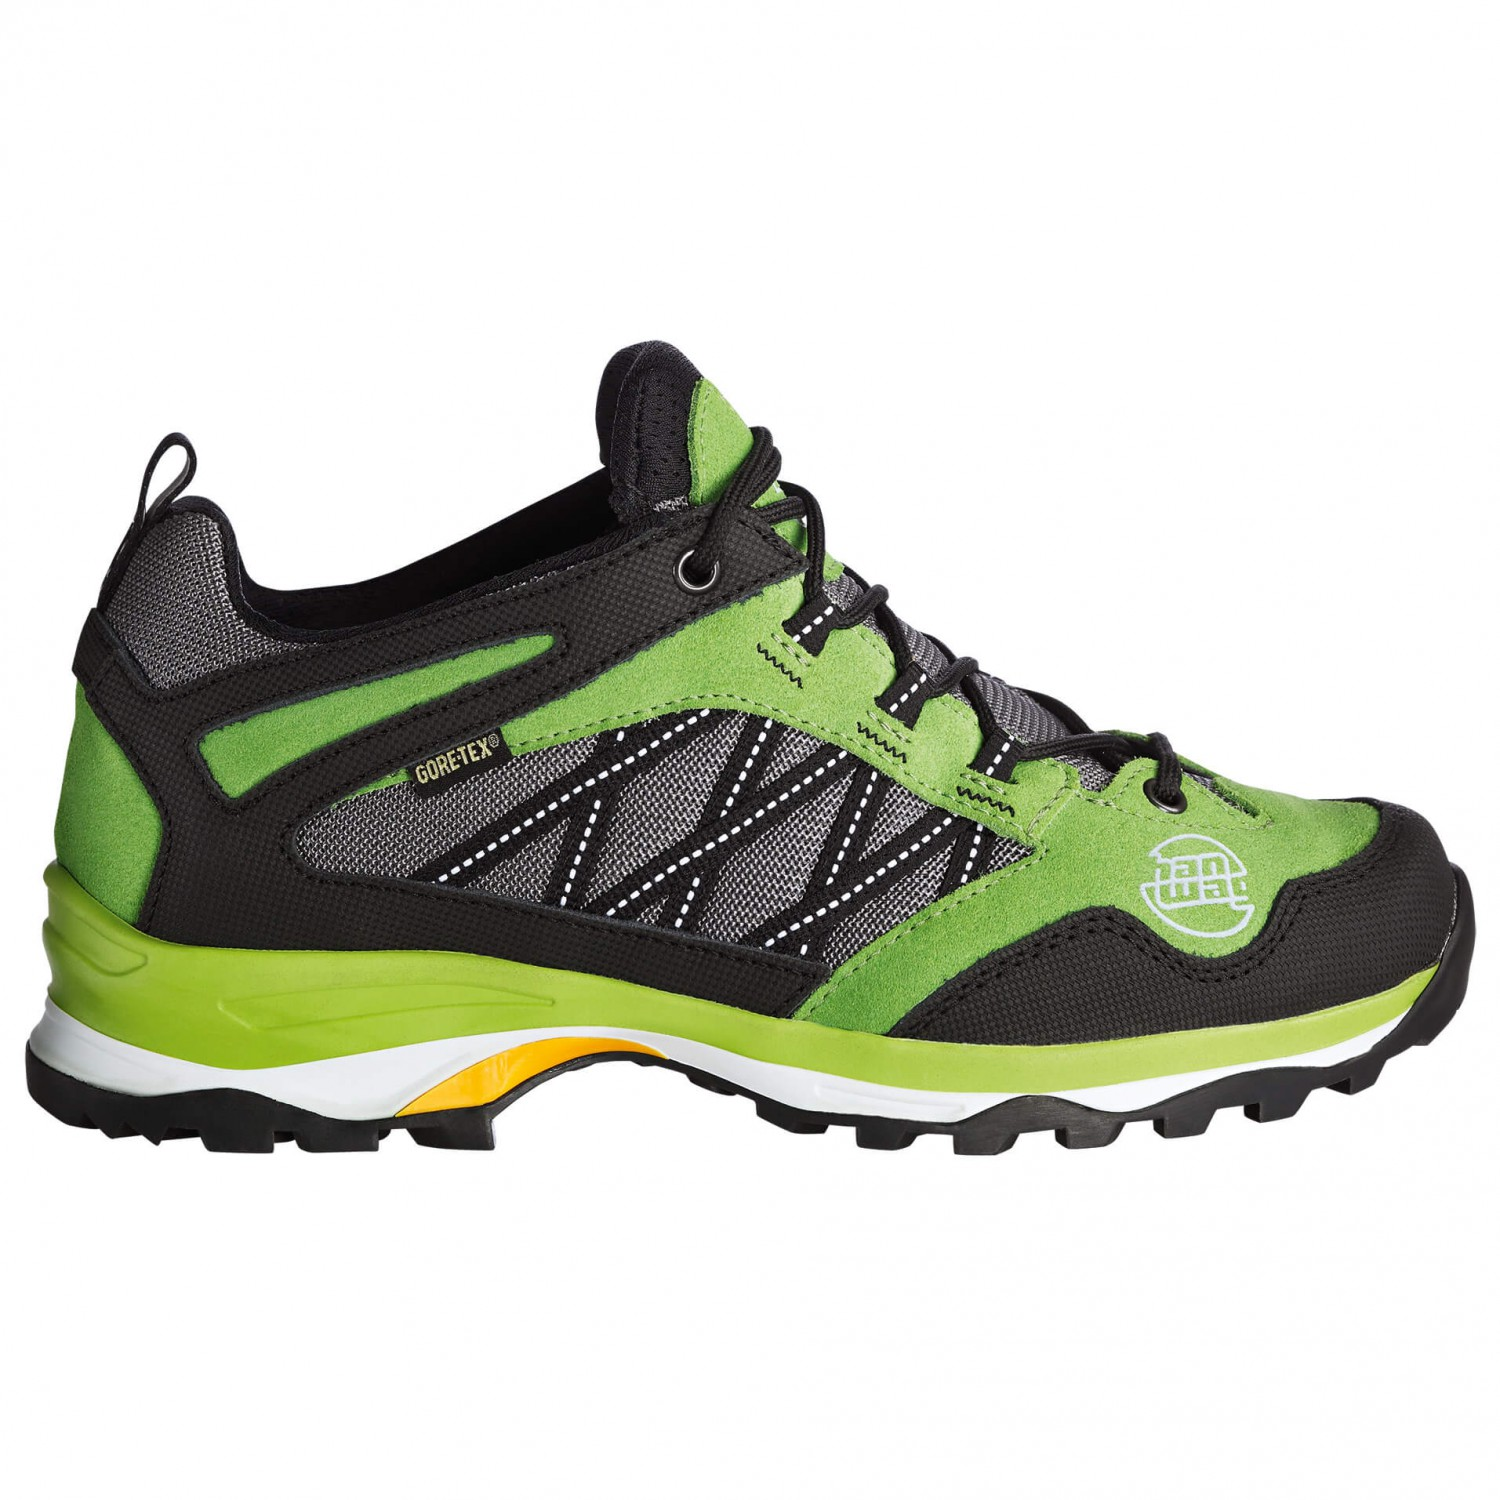 Hanwag - Belorado Low Lady GTX - Multisportschuhe Birch Green